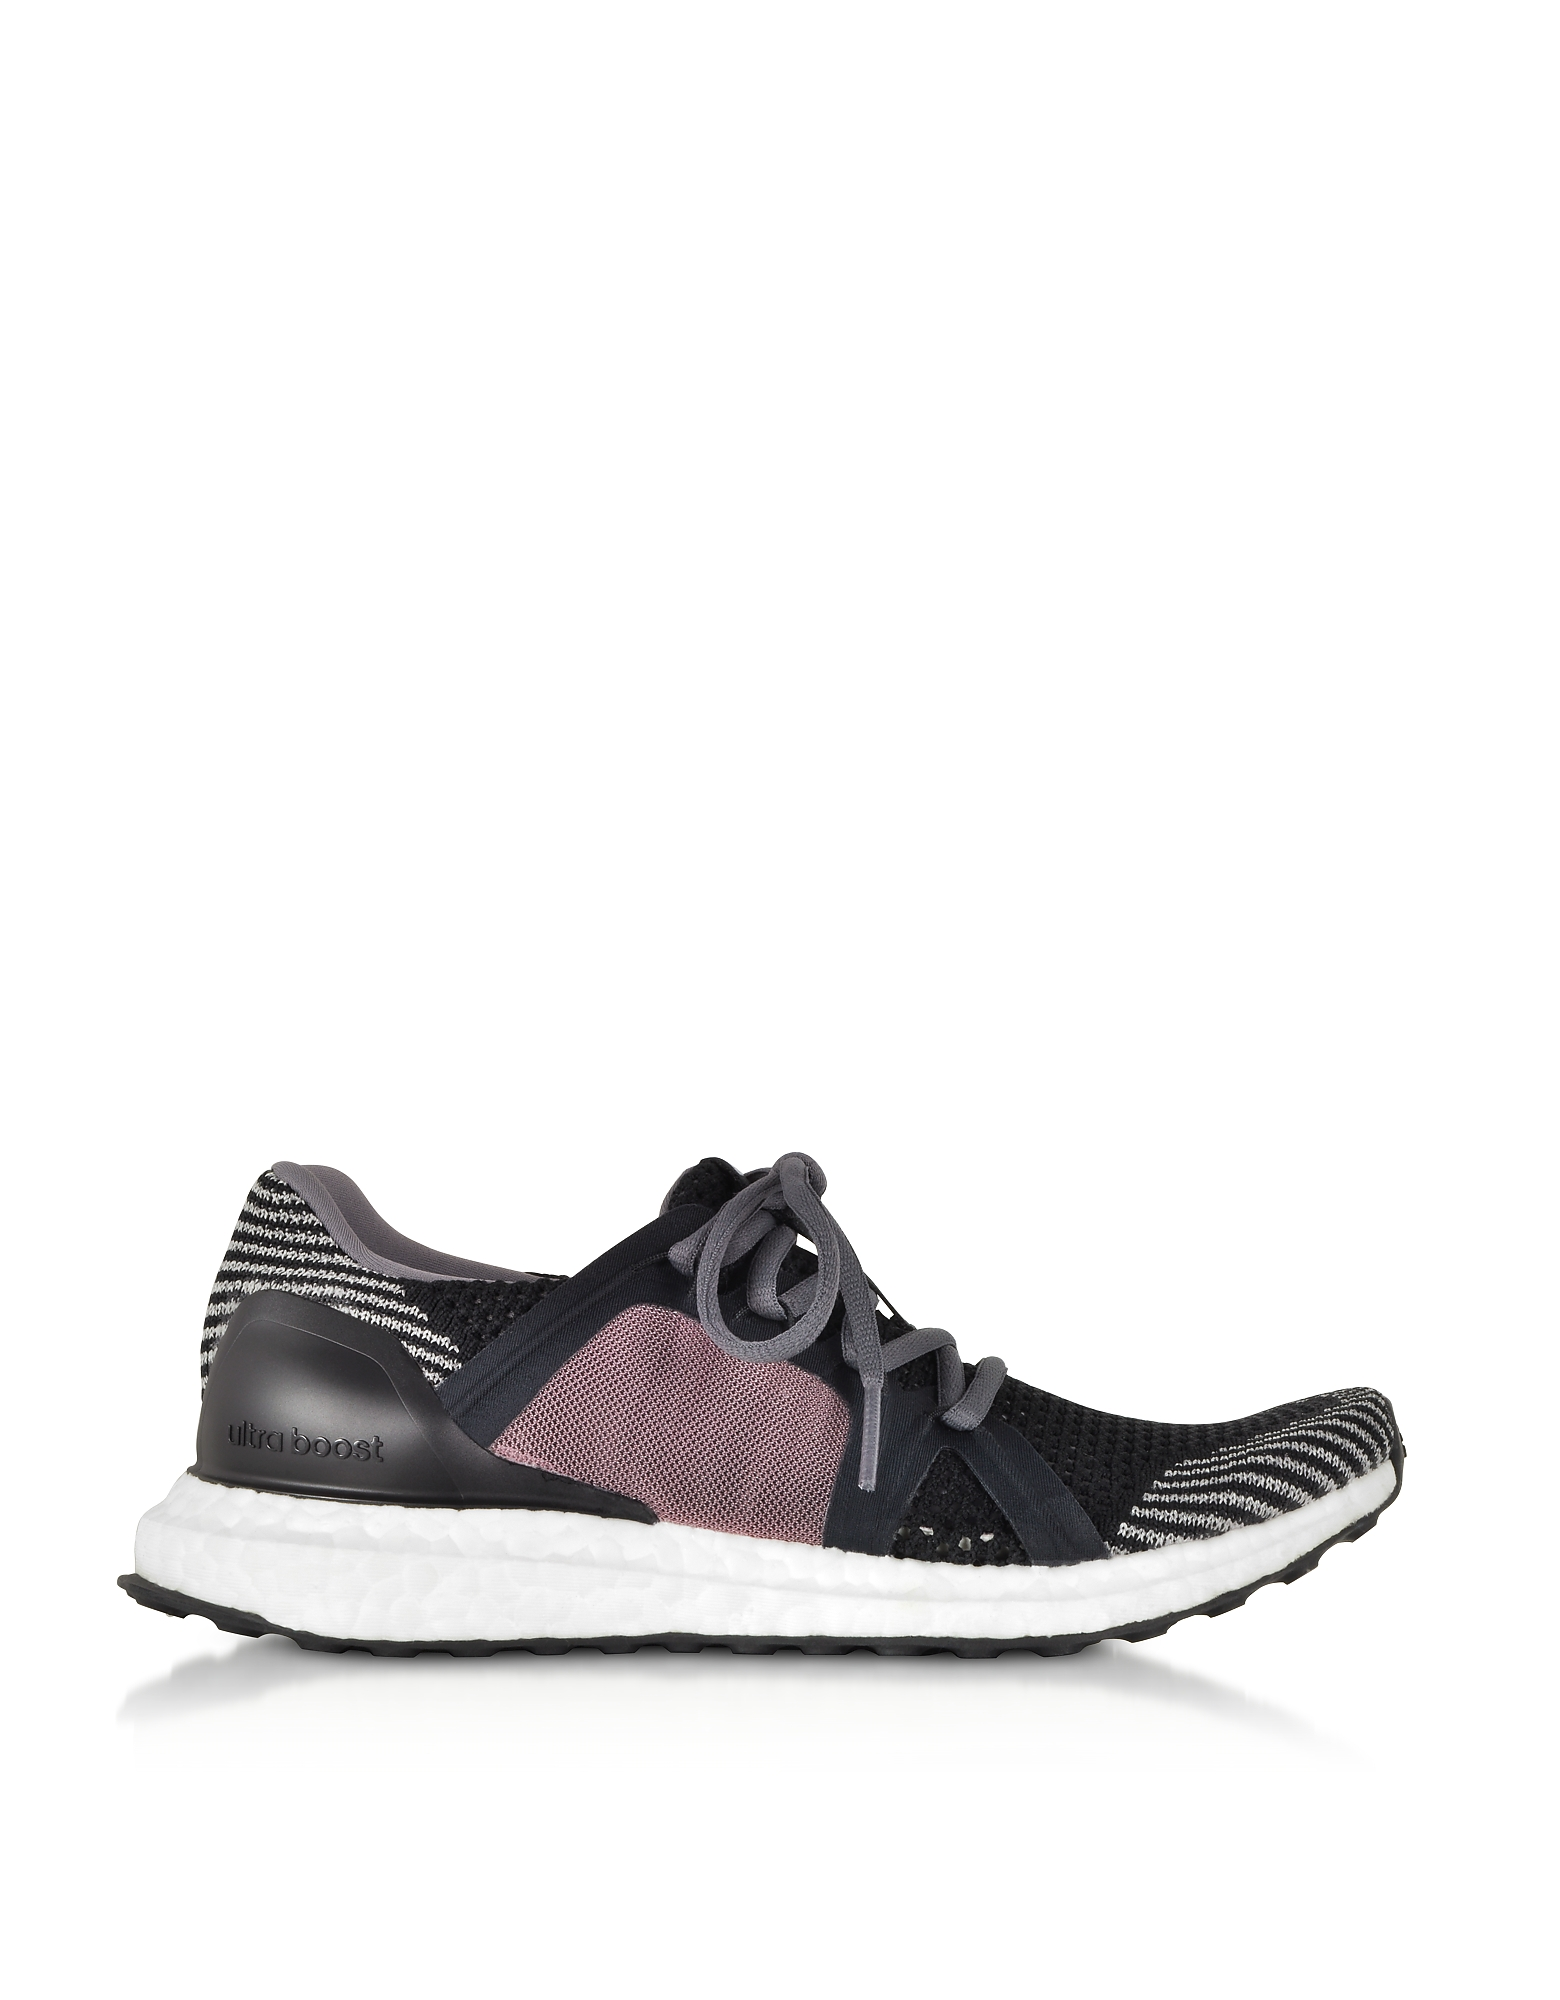 Adidas Stella McCartney Shoes, UltraBOOST X Black and Smoked Pink Women's Sneakers